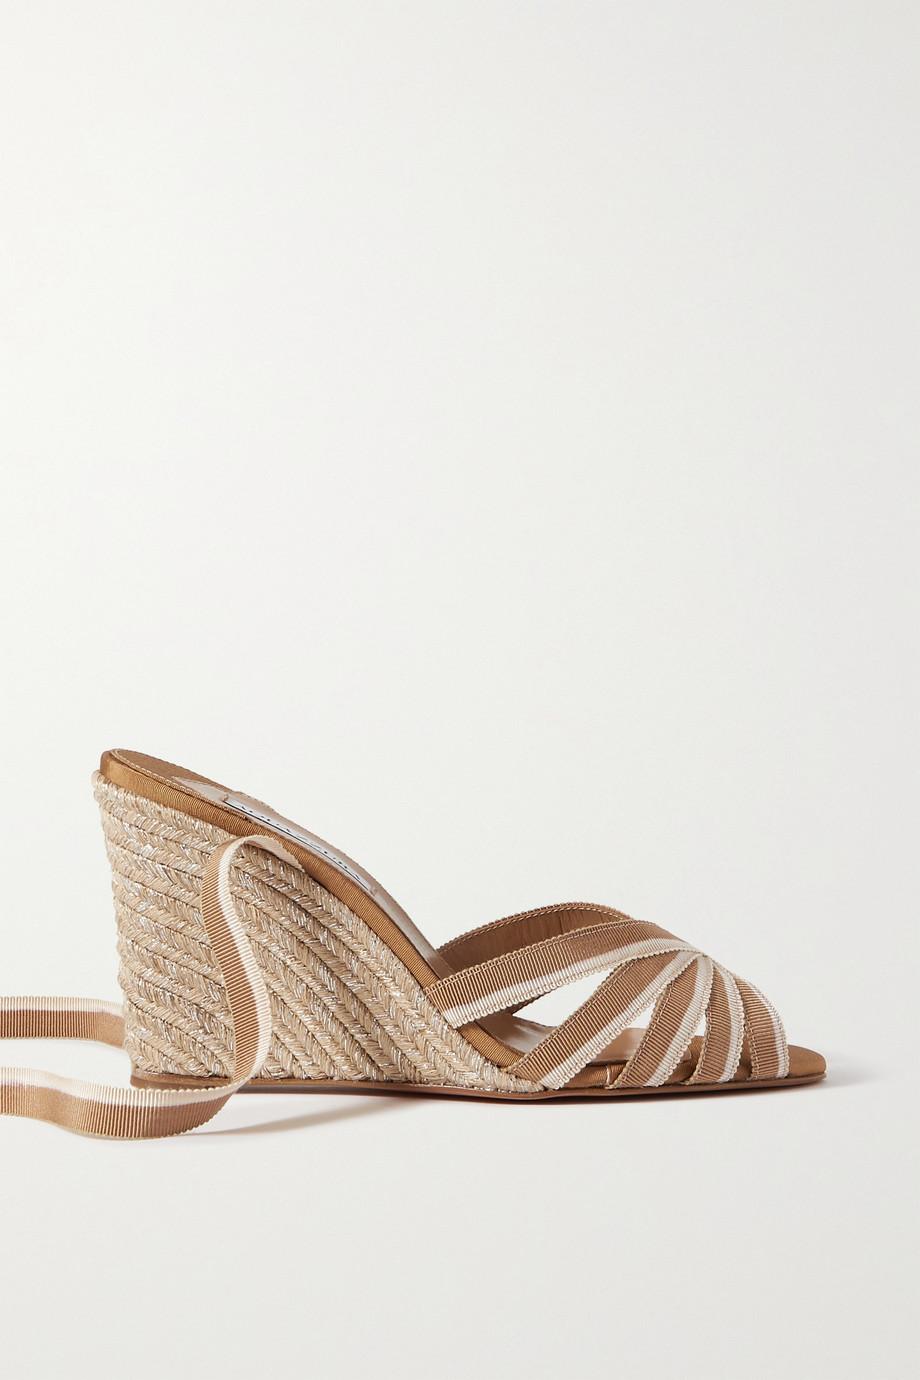 AQUAZZURA Marinaia 85 grosgrain espadrille wedge sandals